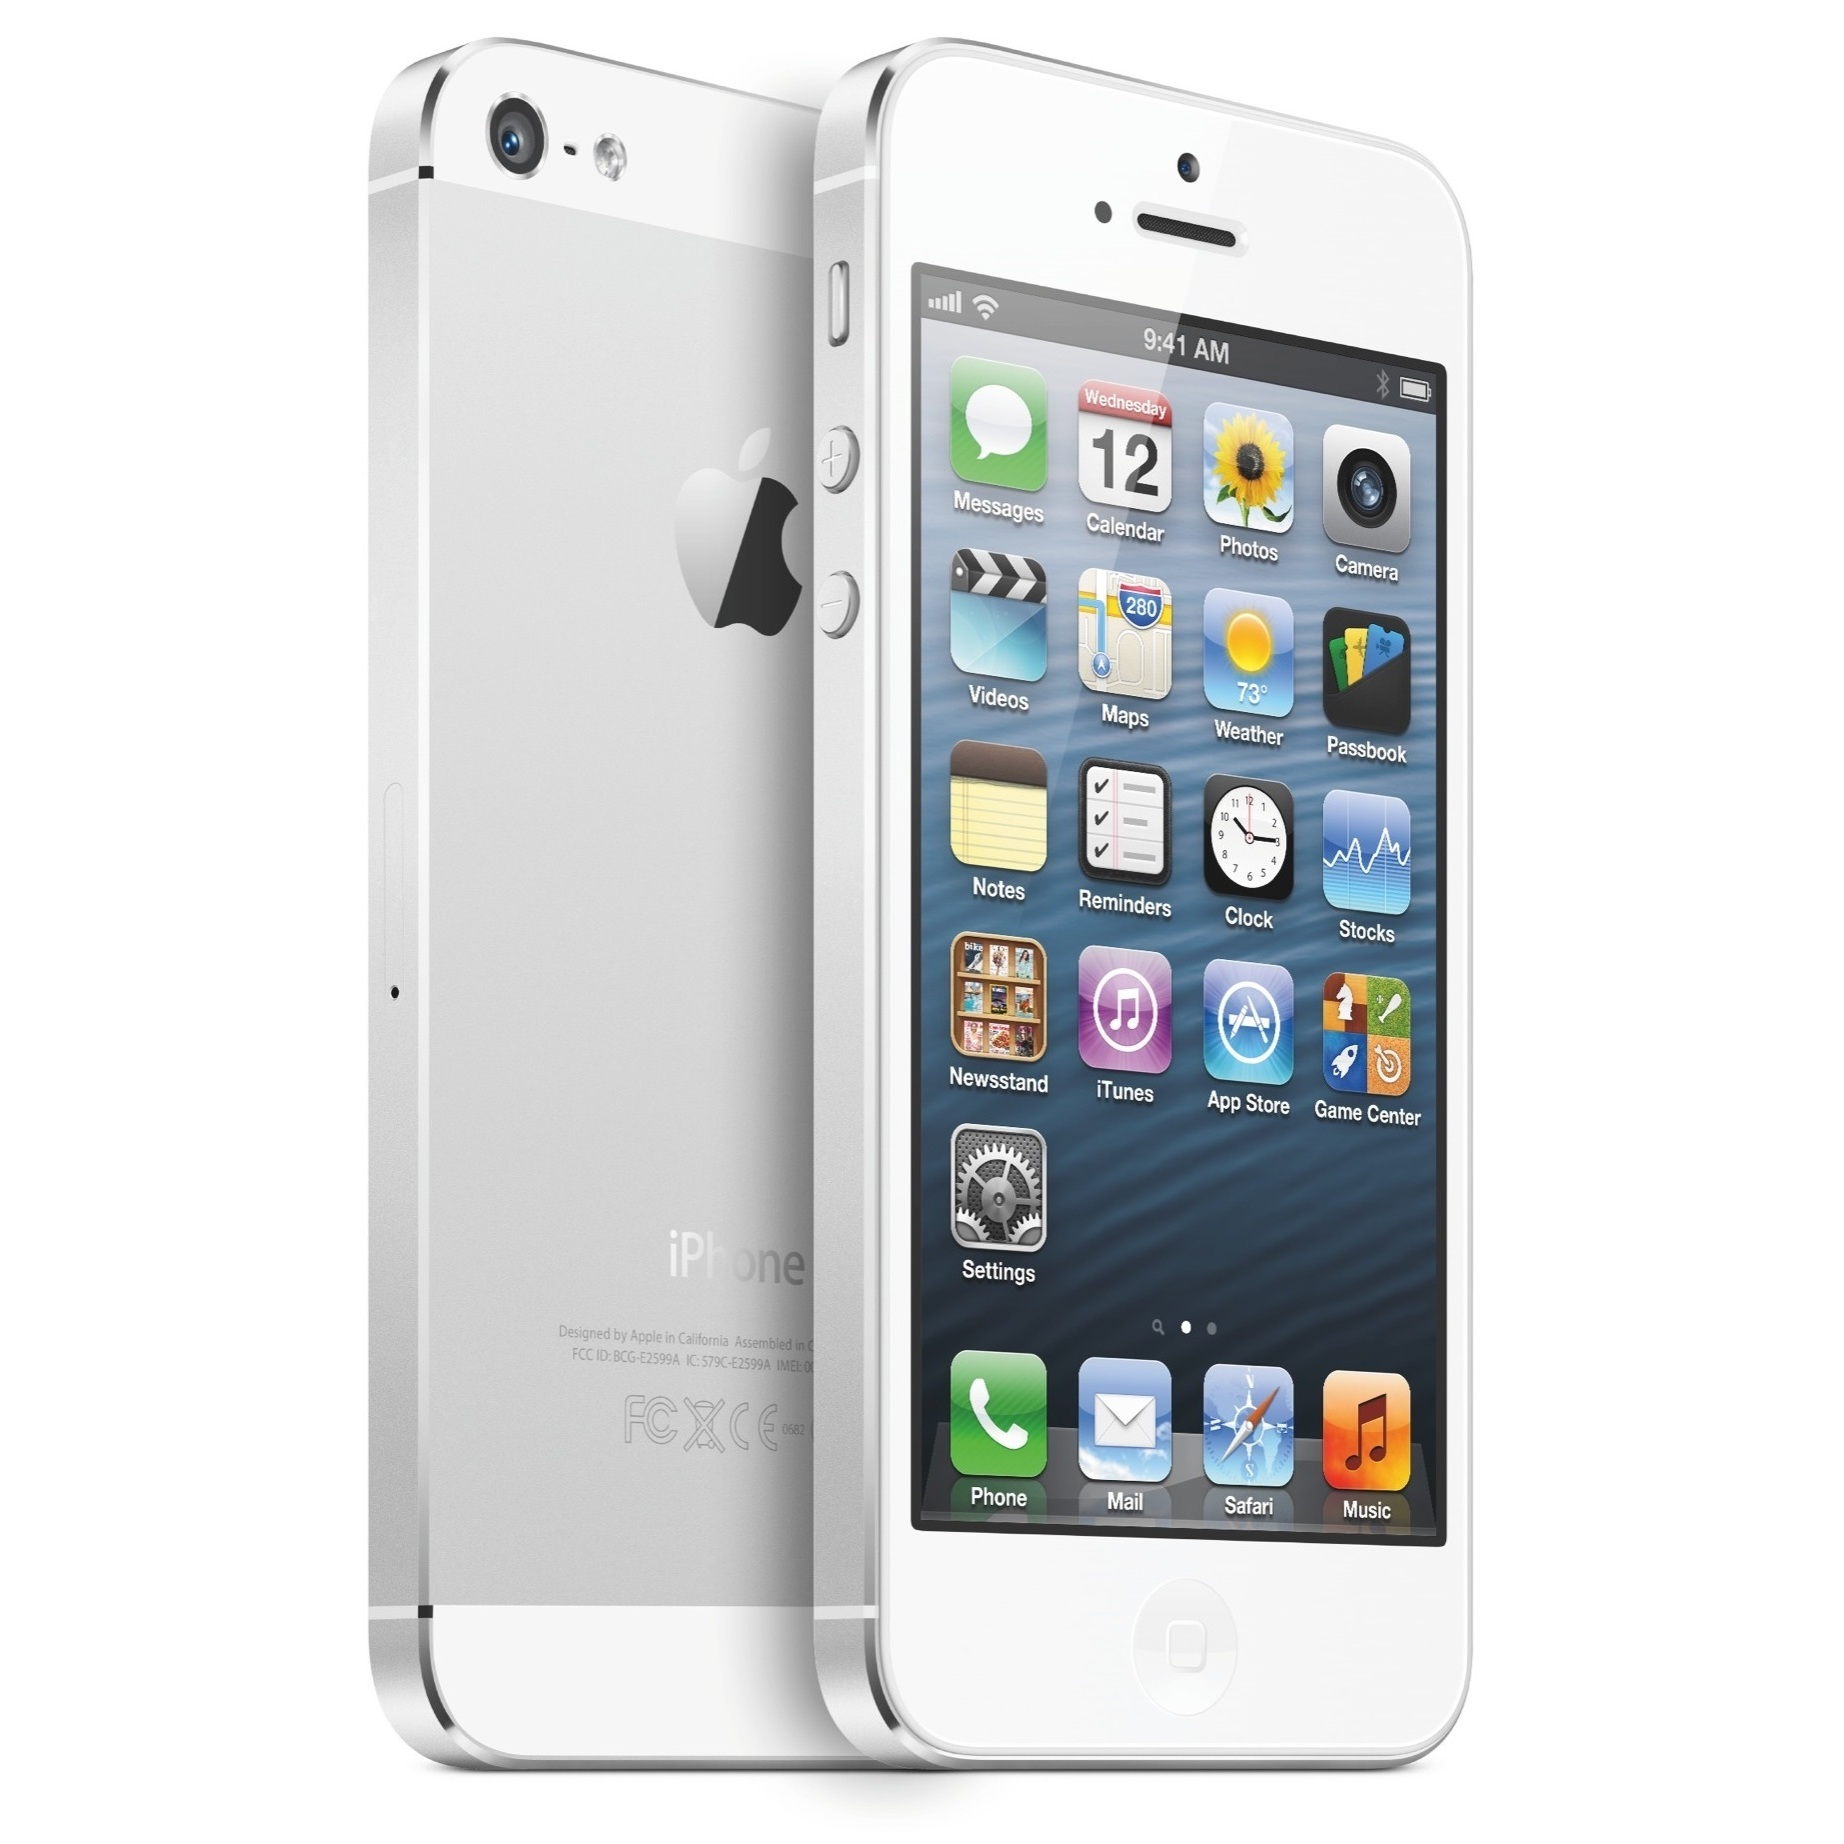 Apple iPhone 5S 64GB Unlocked - Silver (ME303LL/A) Cellphone ...